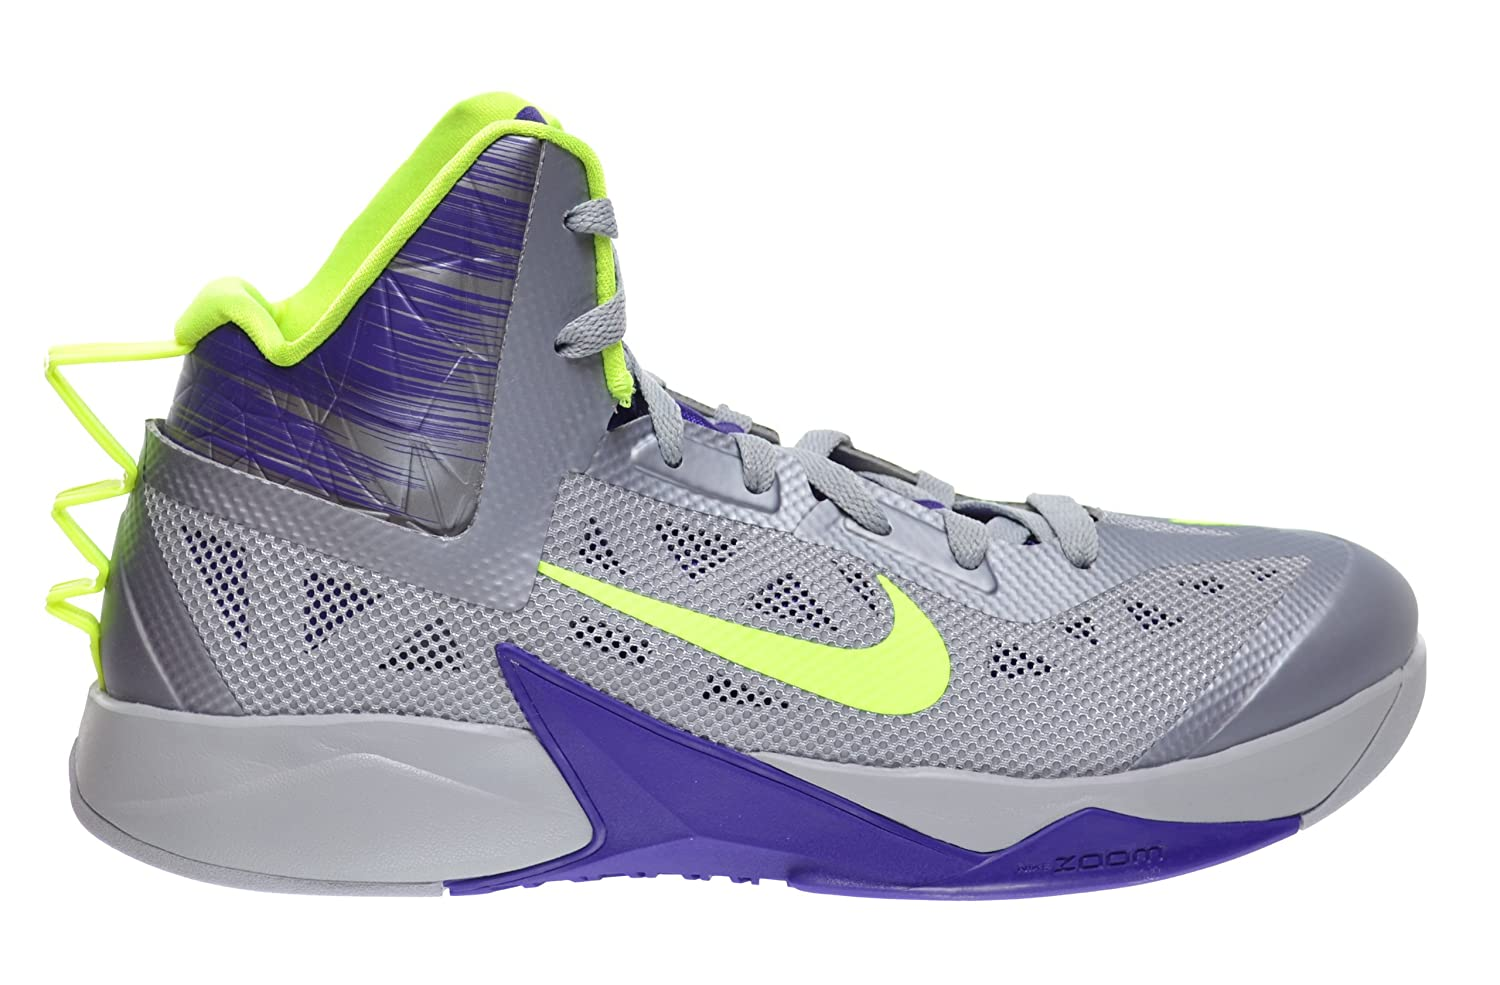 ... amazon nike zoom hyperfuse 2013 mens basketball shoes wolf grey volt  court purple 615896 005 10